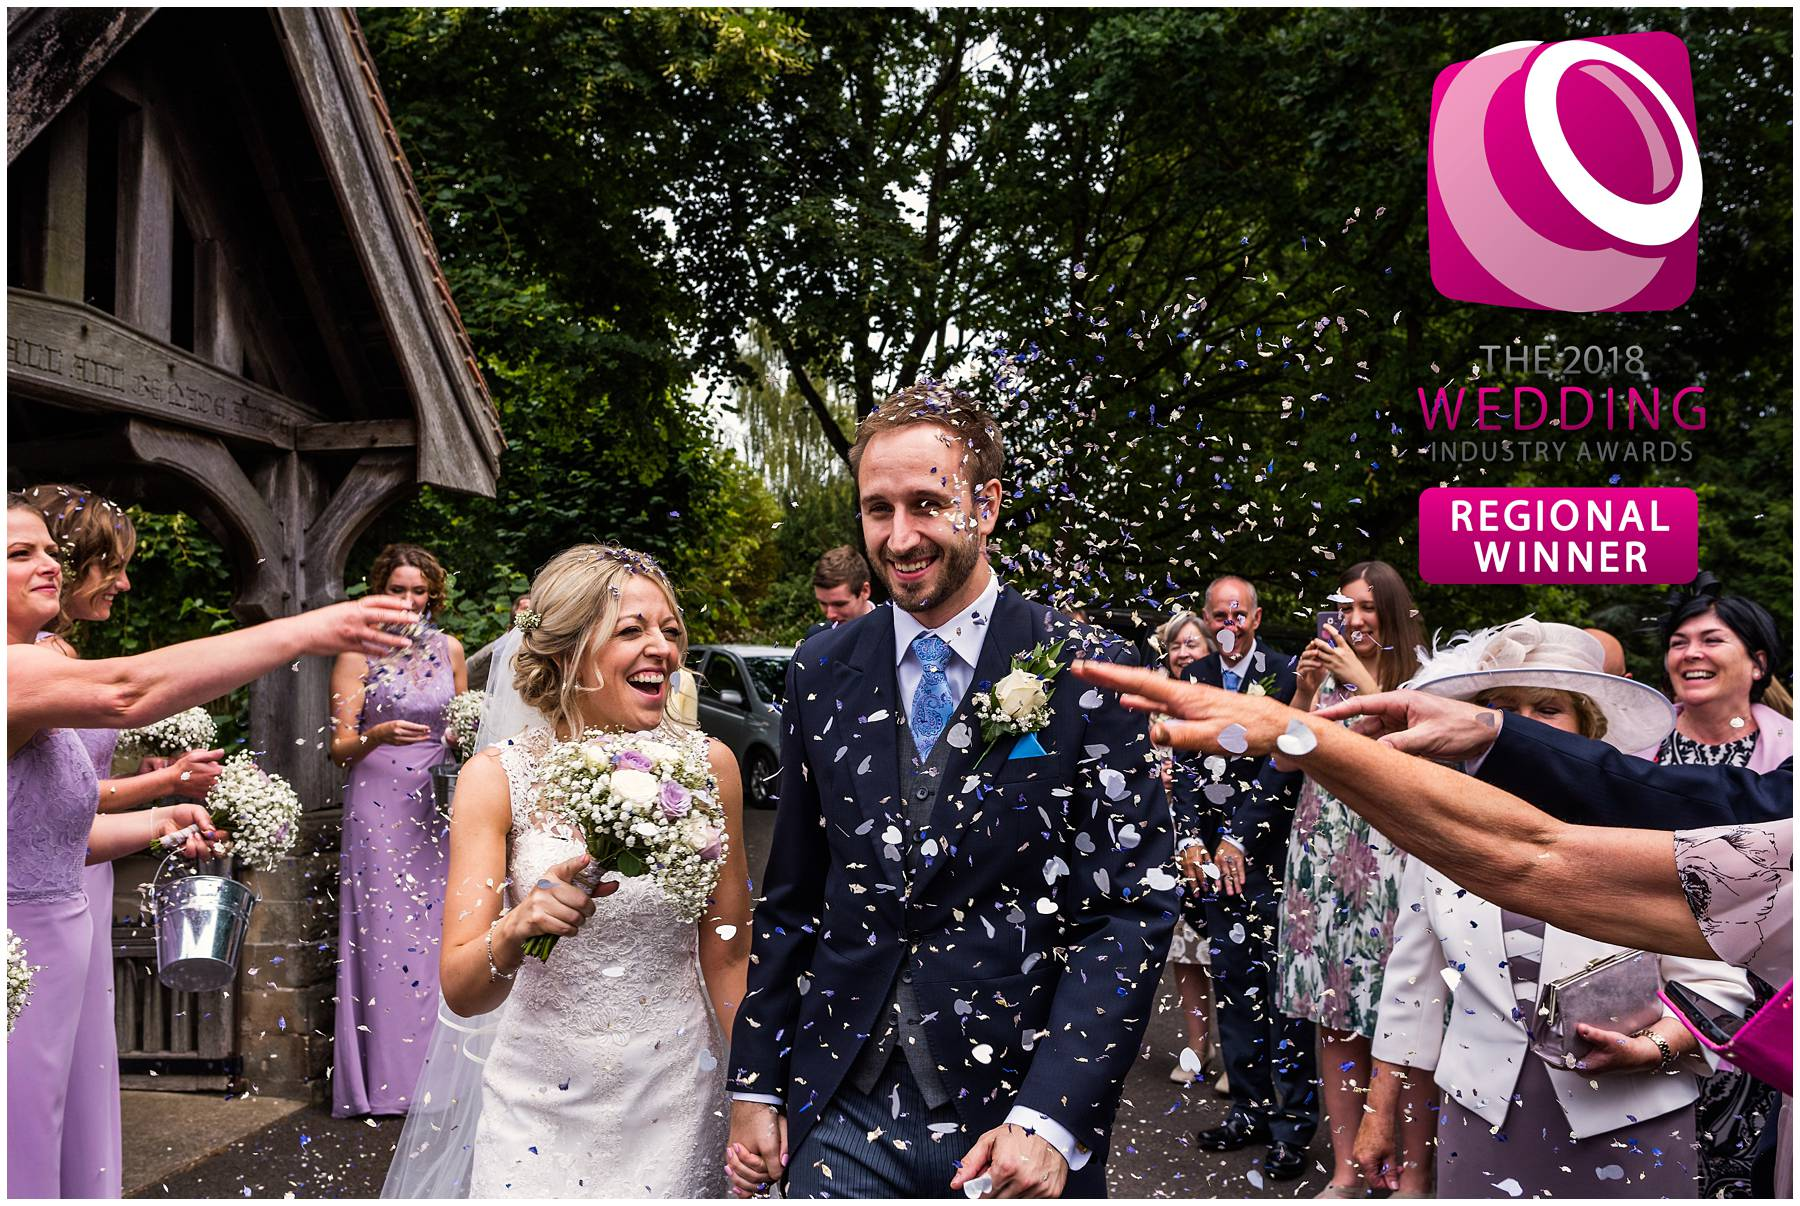 Best Wedding Photographer in East of England